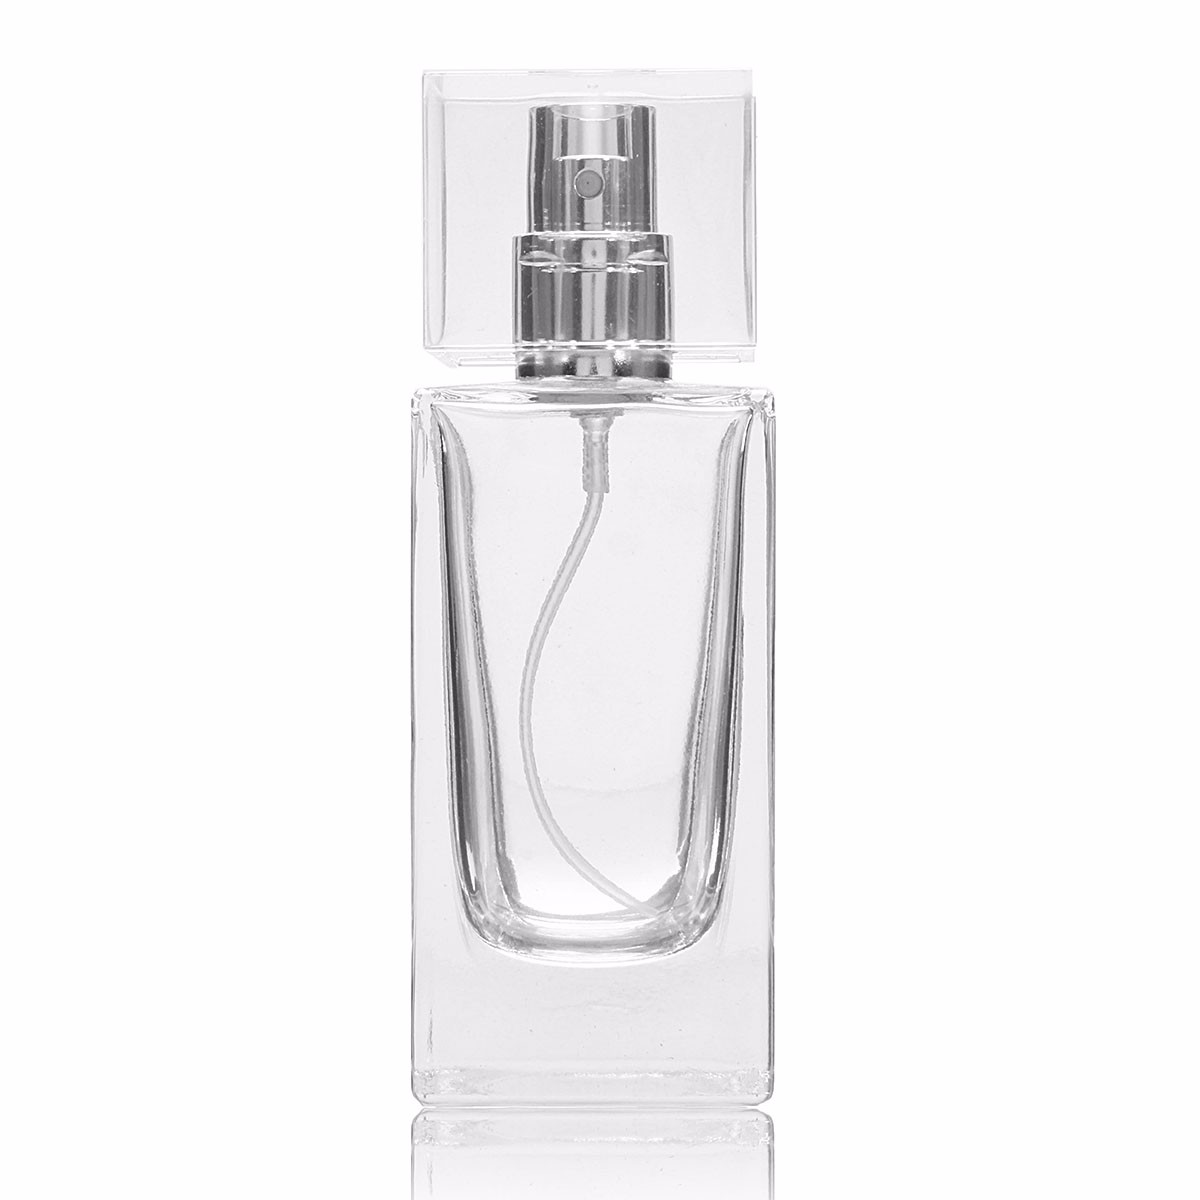 0ml Perfume Glass Bottle Refillable Bottle With Silver Metal Spray Clear Cap Empty Packaging Case With Atomizer For Cosmetic perfume bottle sprayer pump lid cap seal crimping machine pliers tool for 13mm 15mm 20mm optional